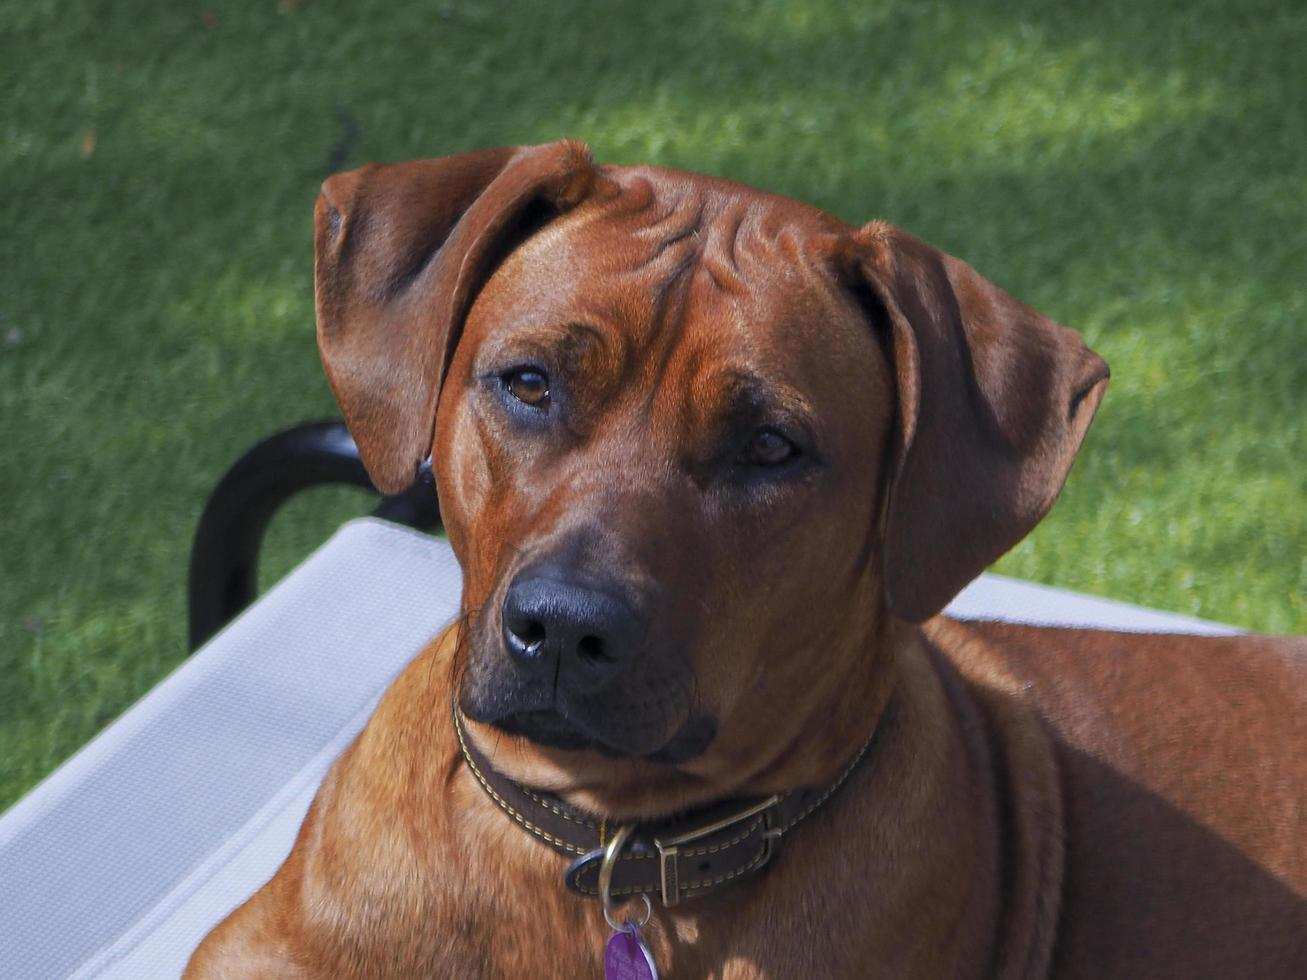 Rhodesian Ridgeback resting  on a lawn chair photo